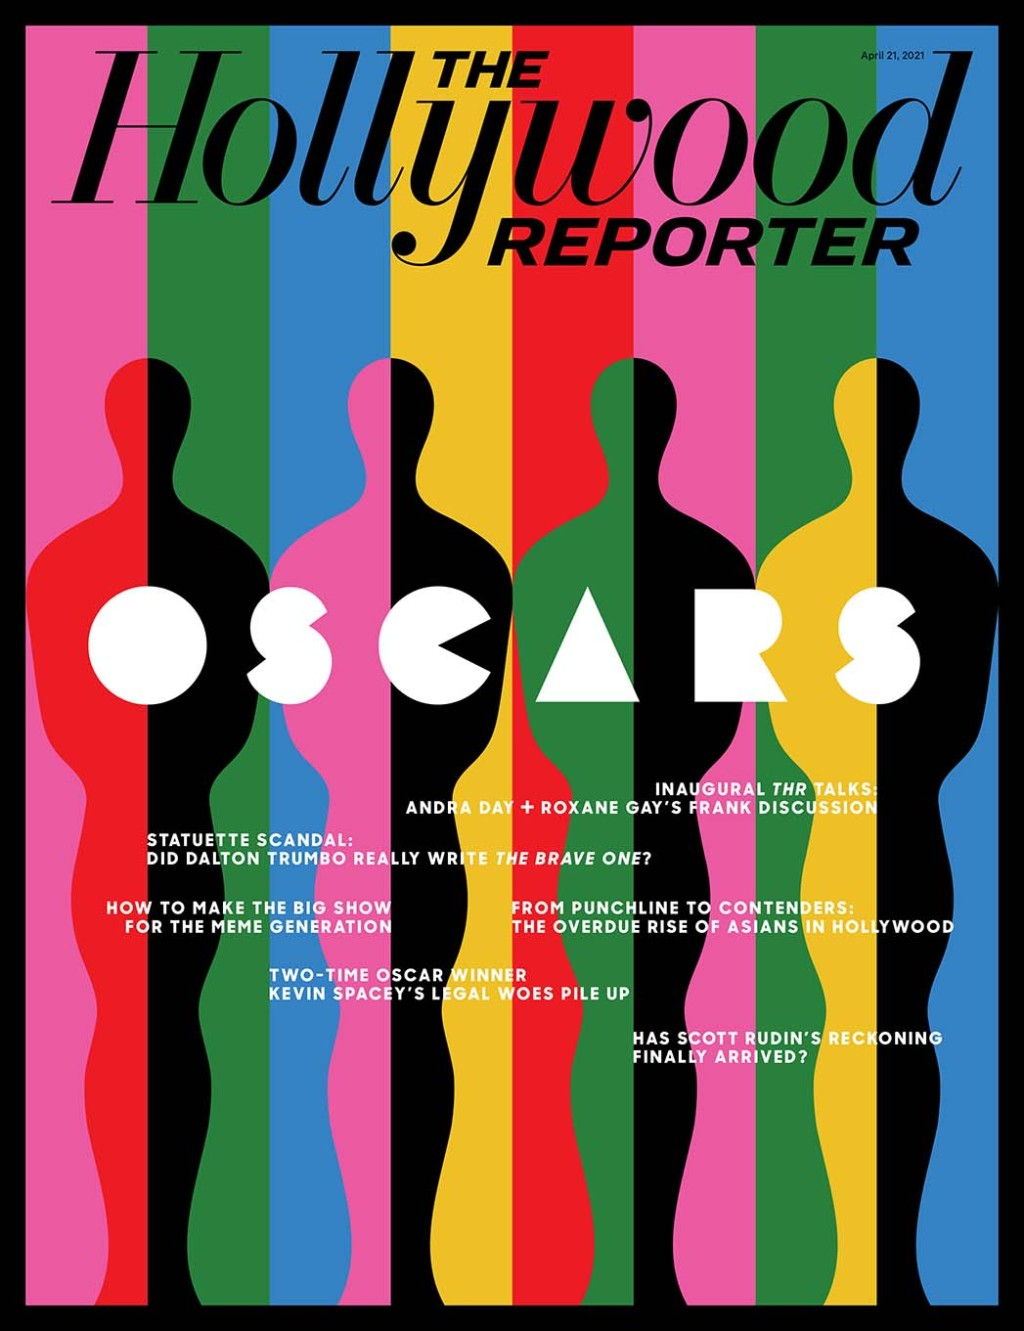 The Hollywood Reporter Issue 15 Cover- Illustration By Olimpia Zagnoli